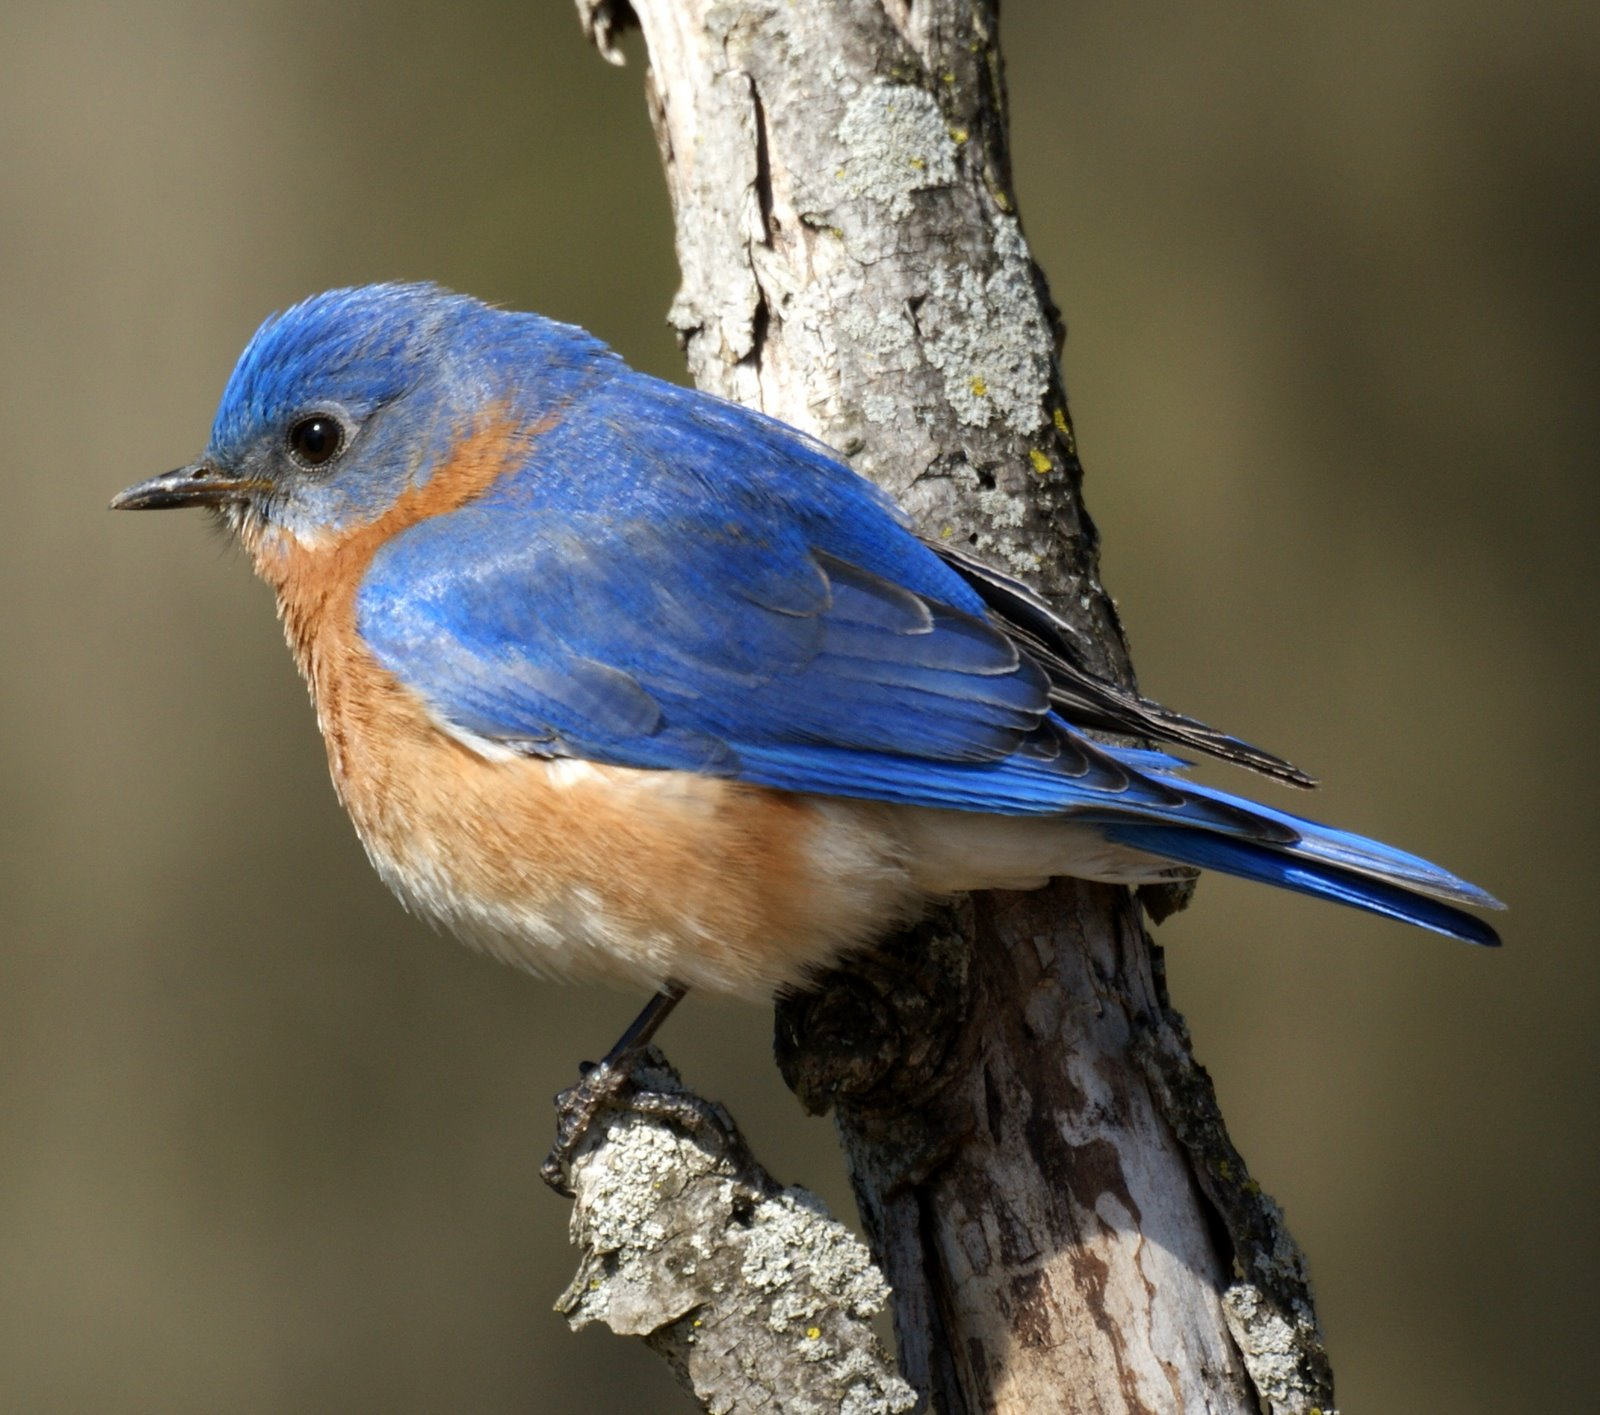 Eastern Bluebird Facts | Anatomy, Diet, Habitat, Behavior - Animals Time